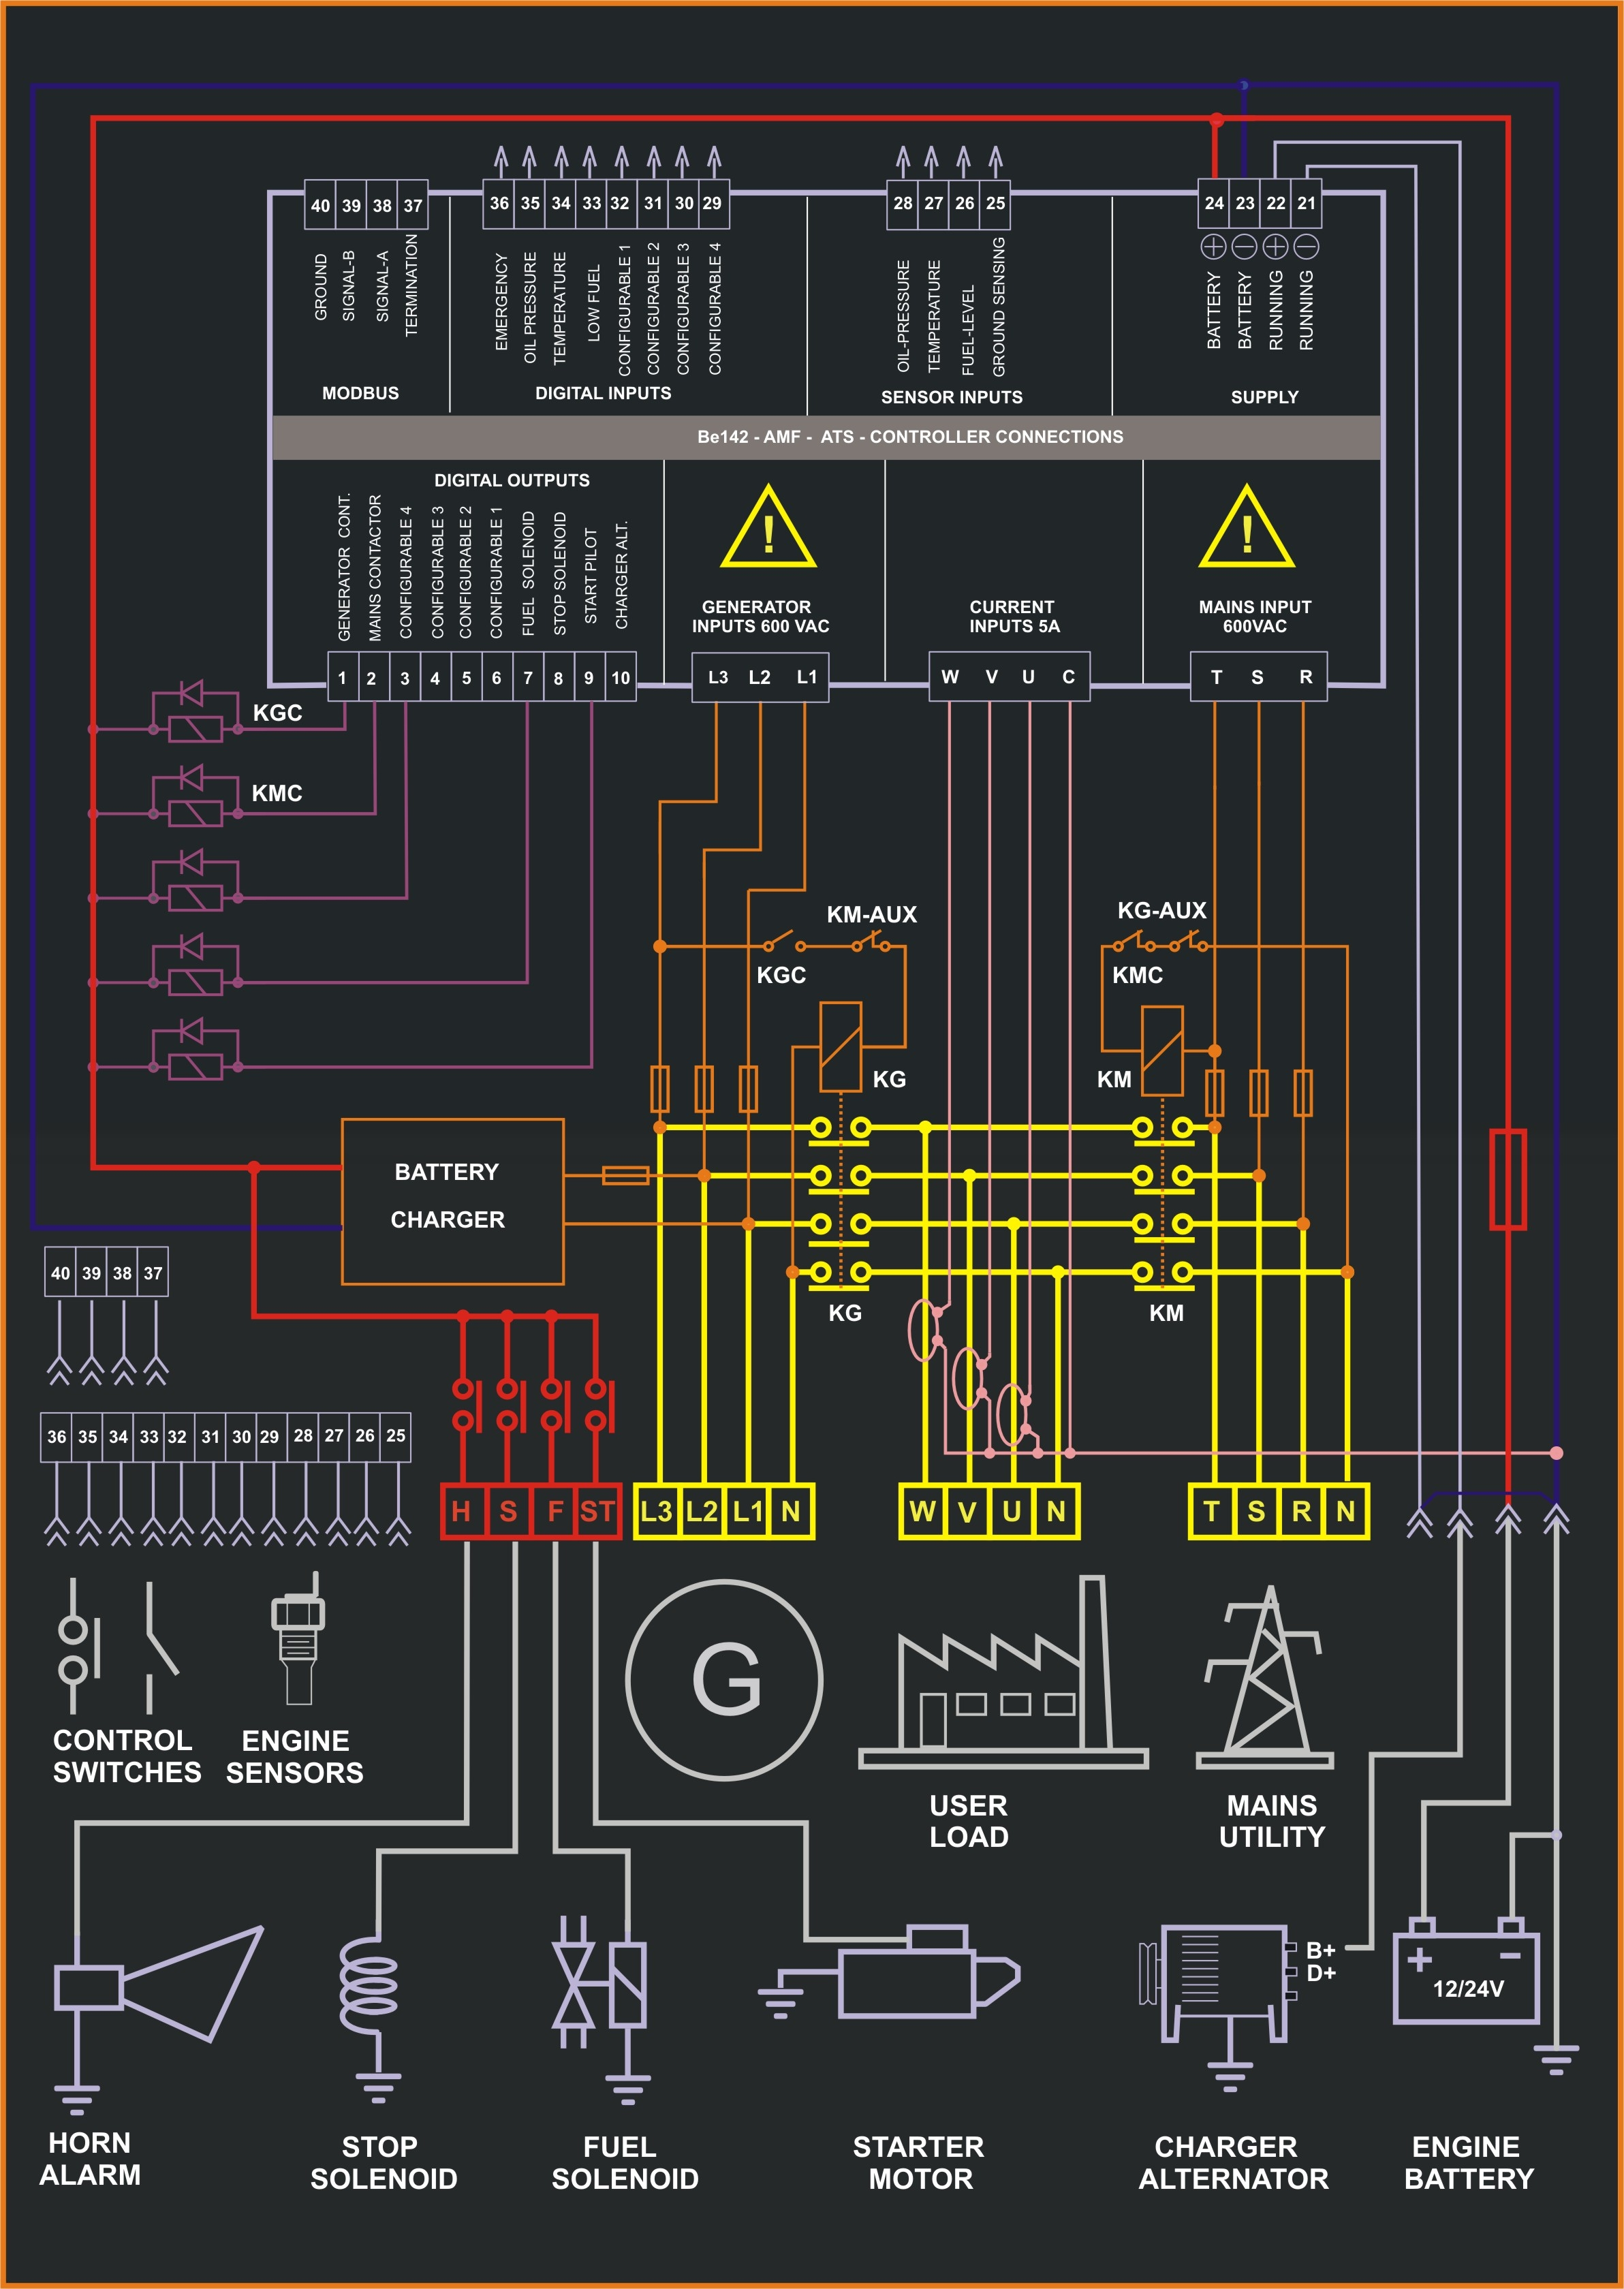 Motor Control Panel Wiring Mess Diagrams House Symbols Diagram For Car Amf Controller Be142 Genset Schematic